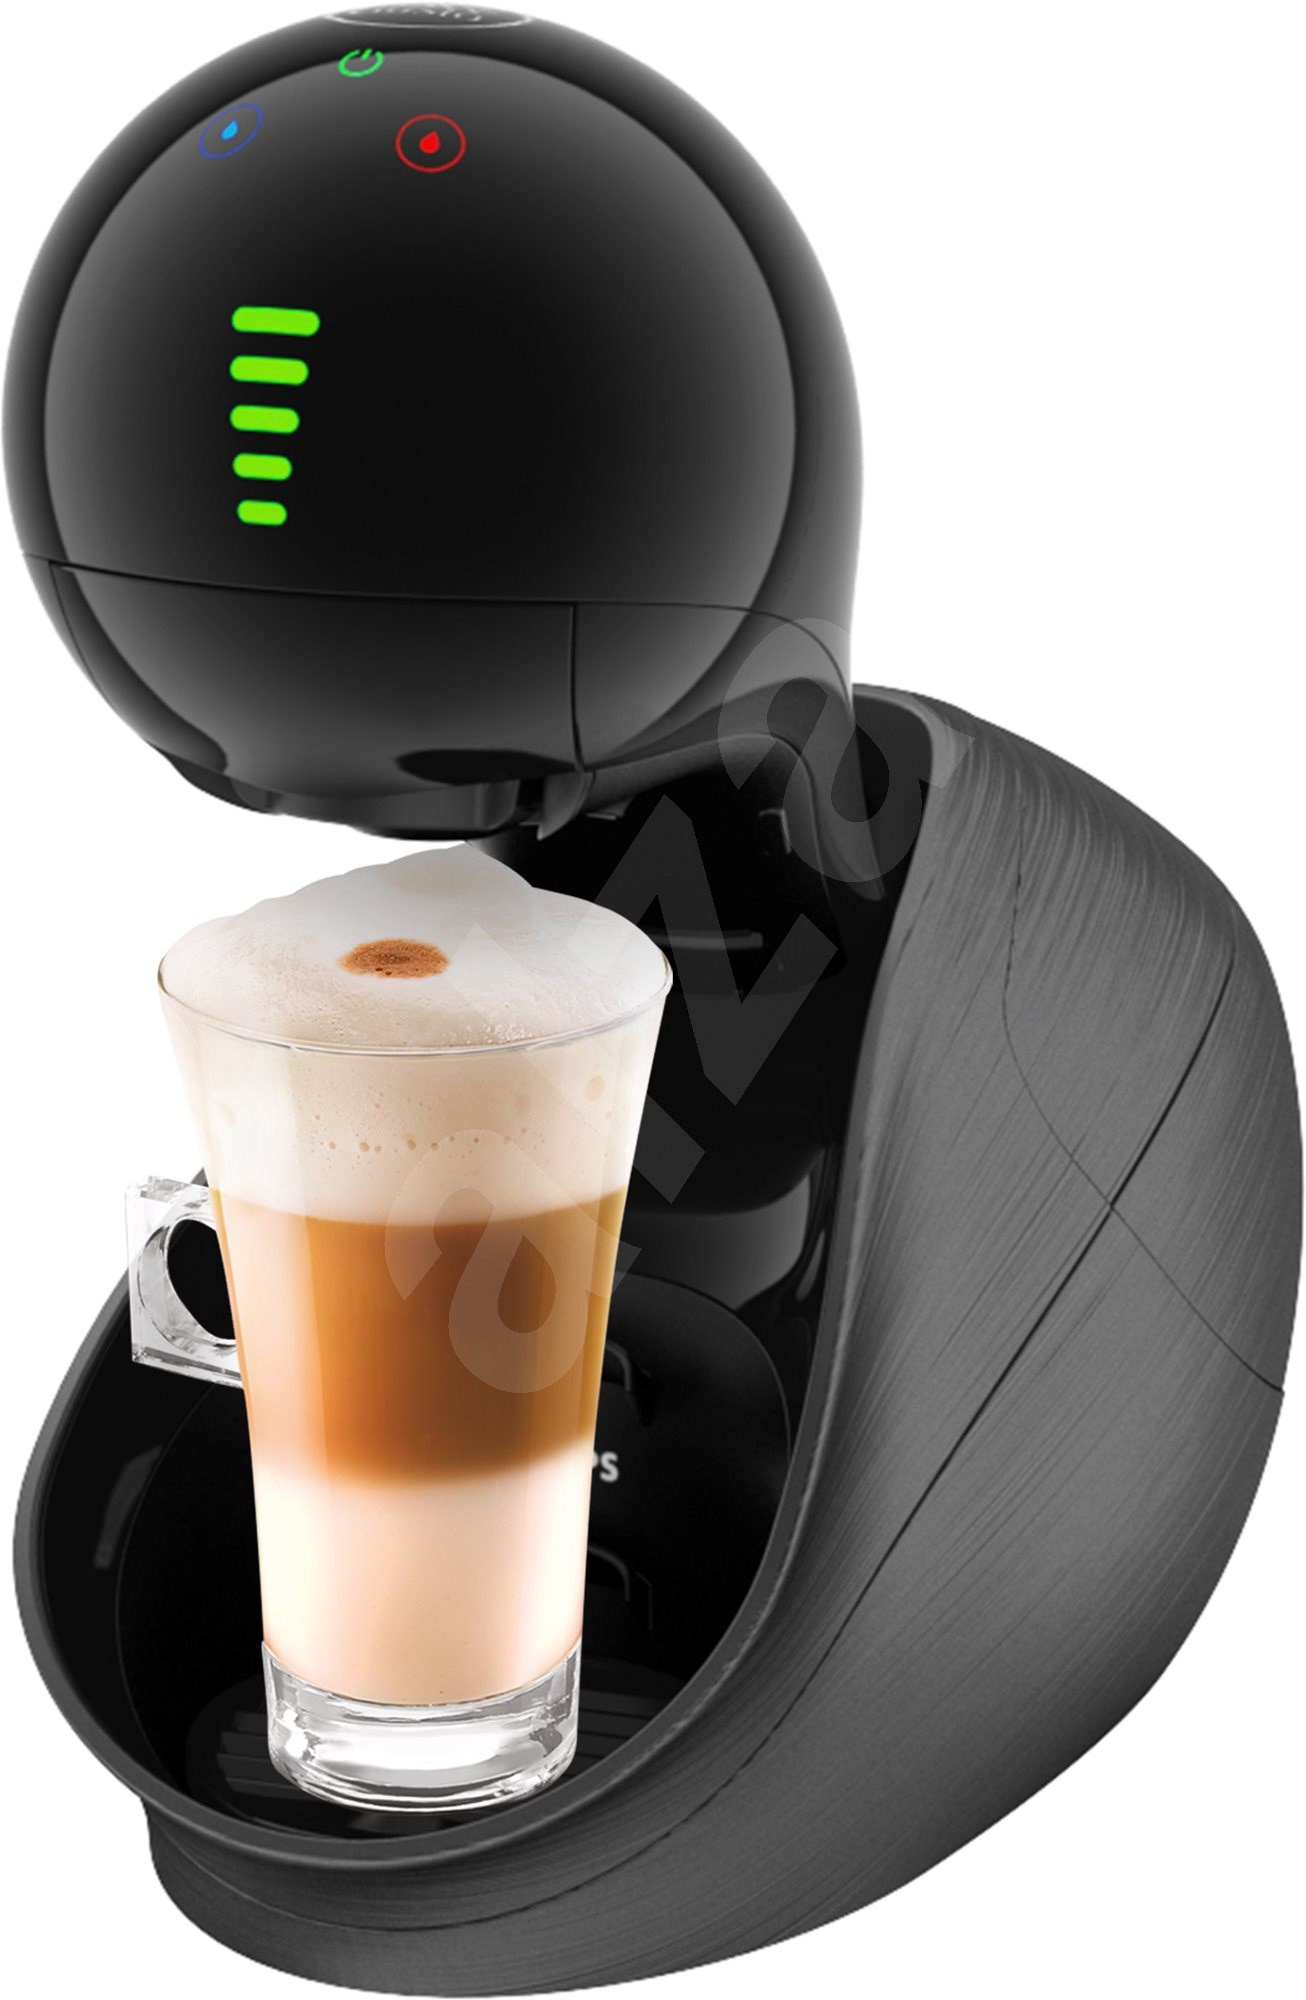 krups nescafe dolce gusto movenza kp600831 black capsule. Black Bedroom Furniture Sets. Home Design Ideas